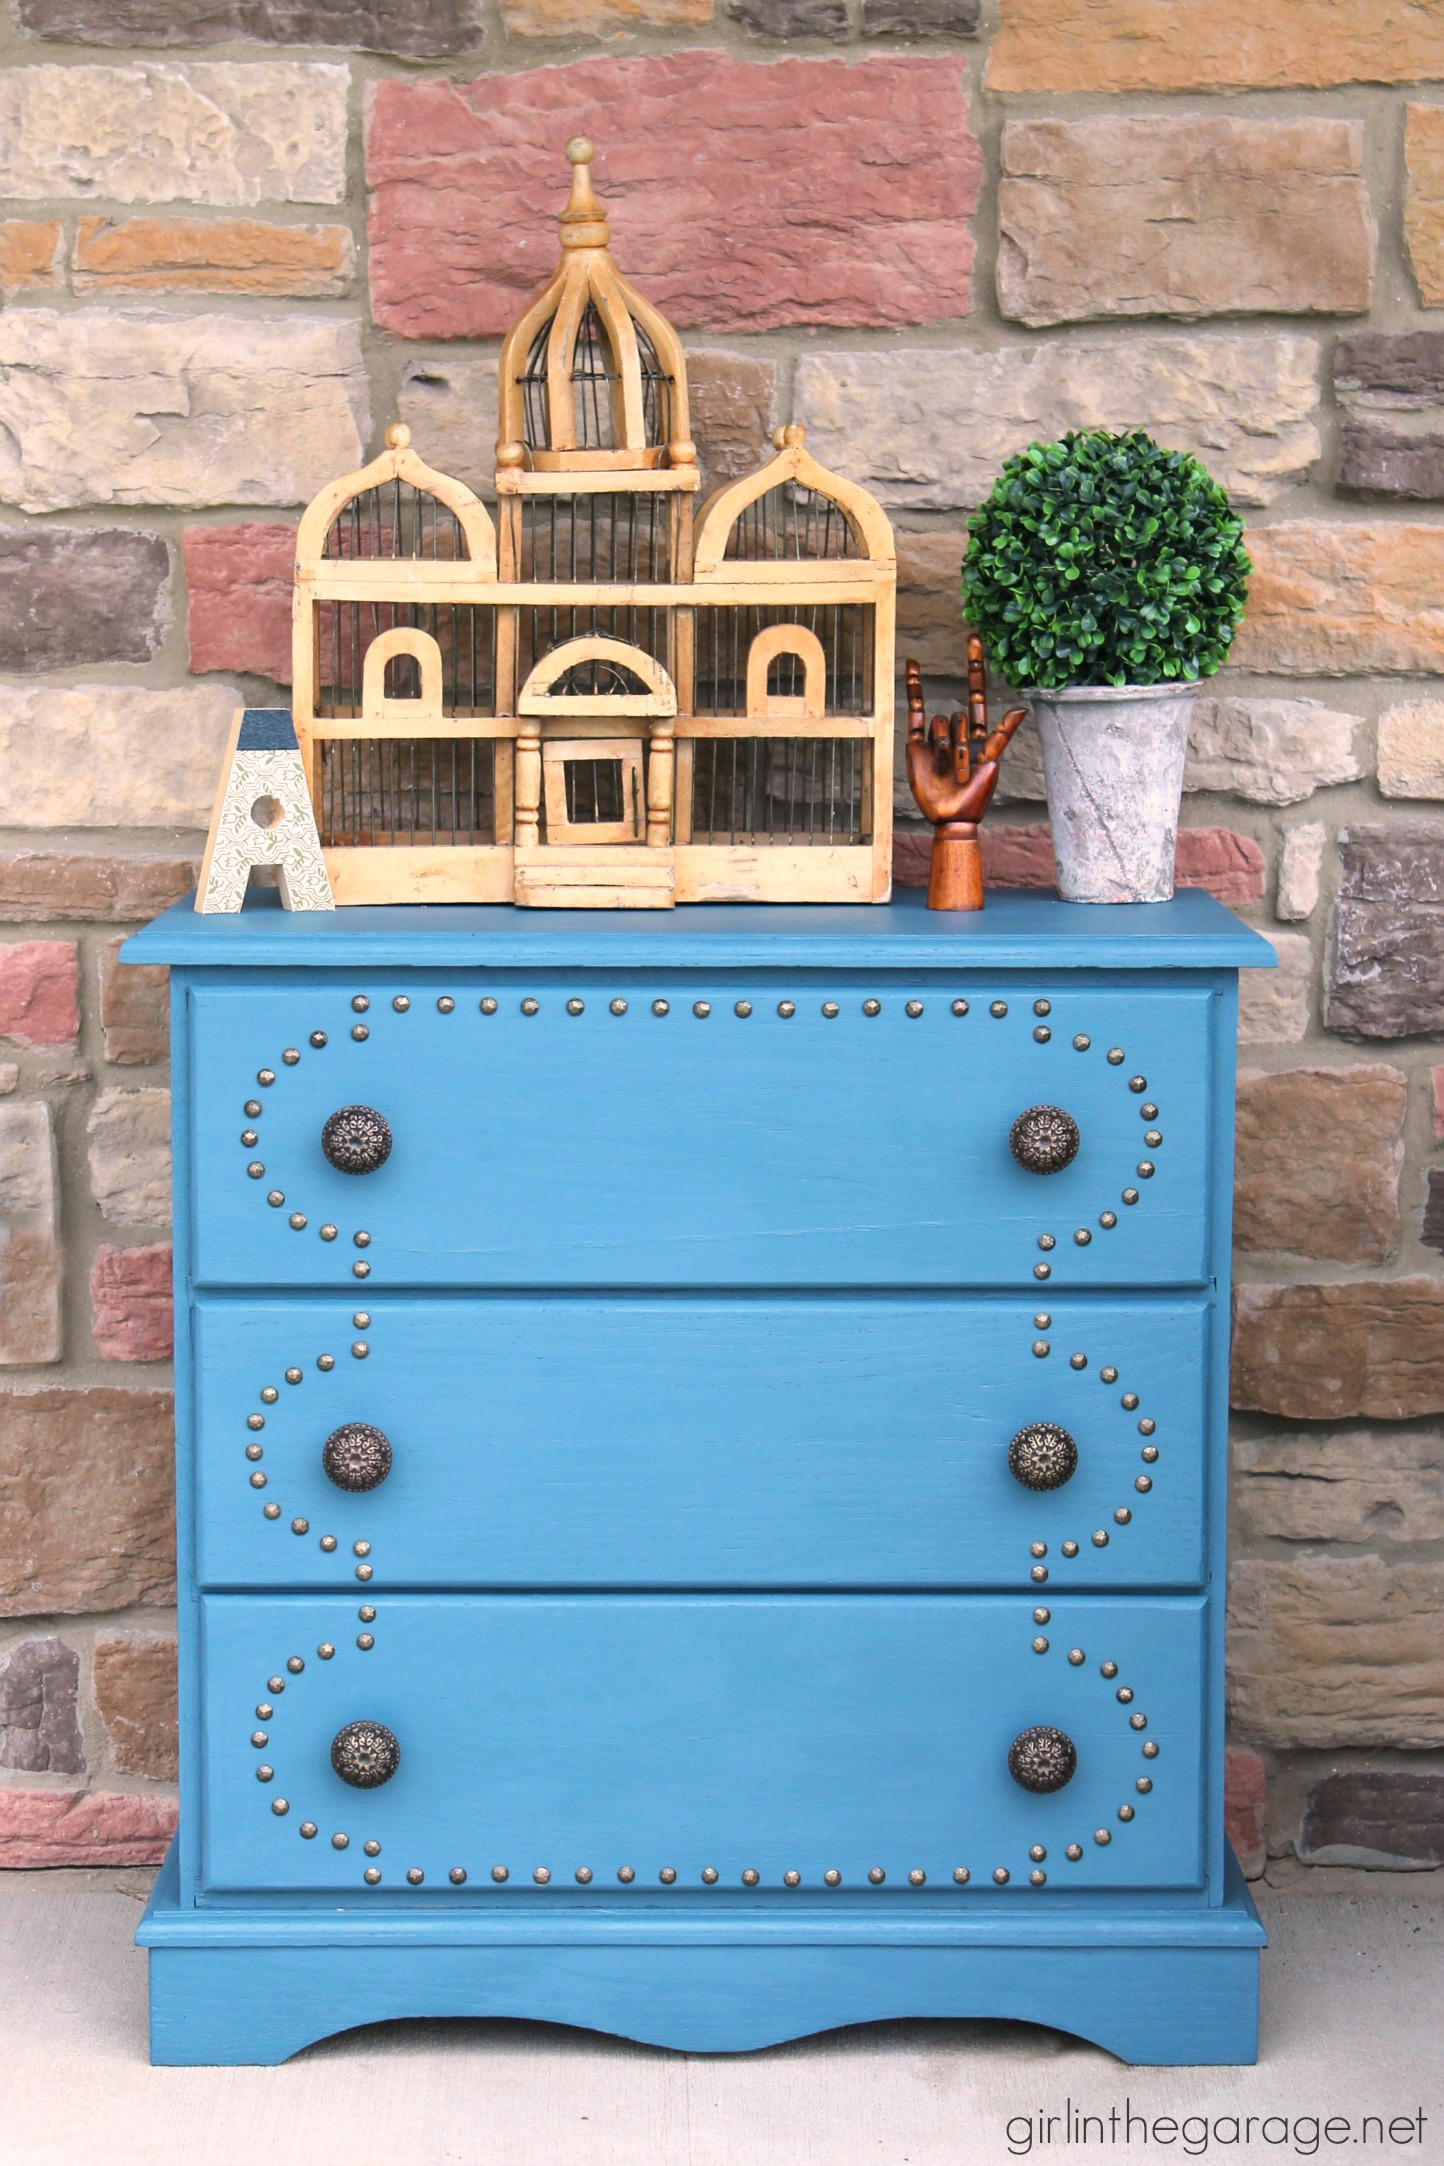 Aubusson Blue Dresser with Upholstery Tacks - Girl in the Garage